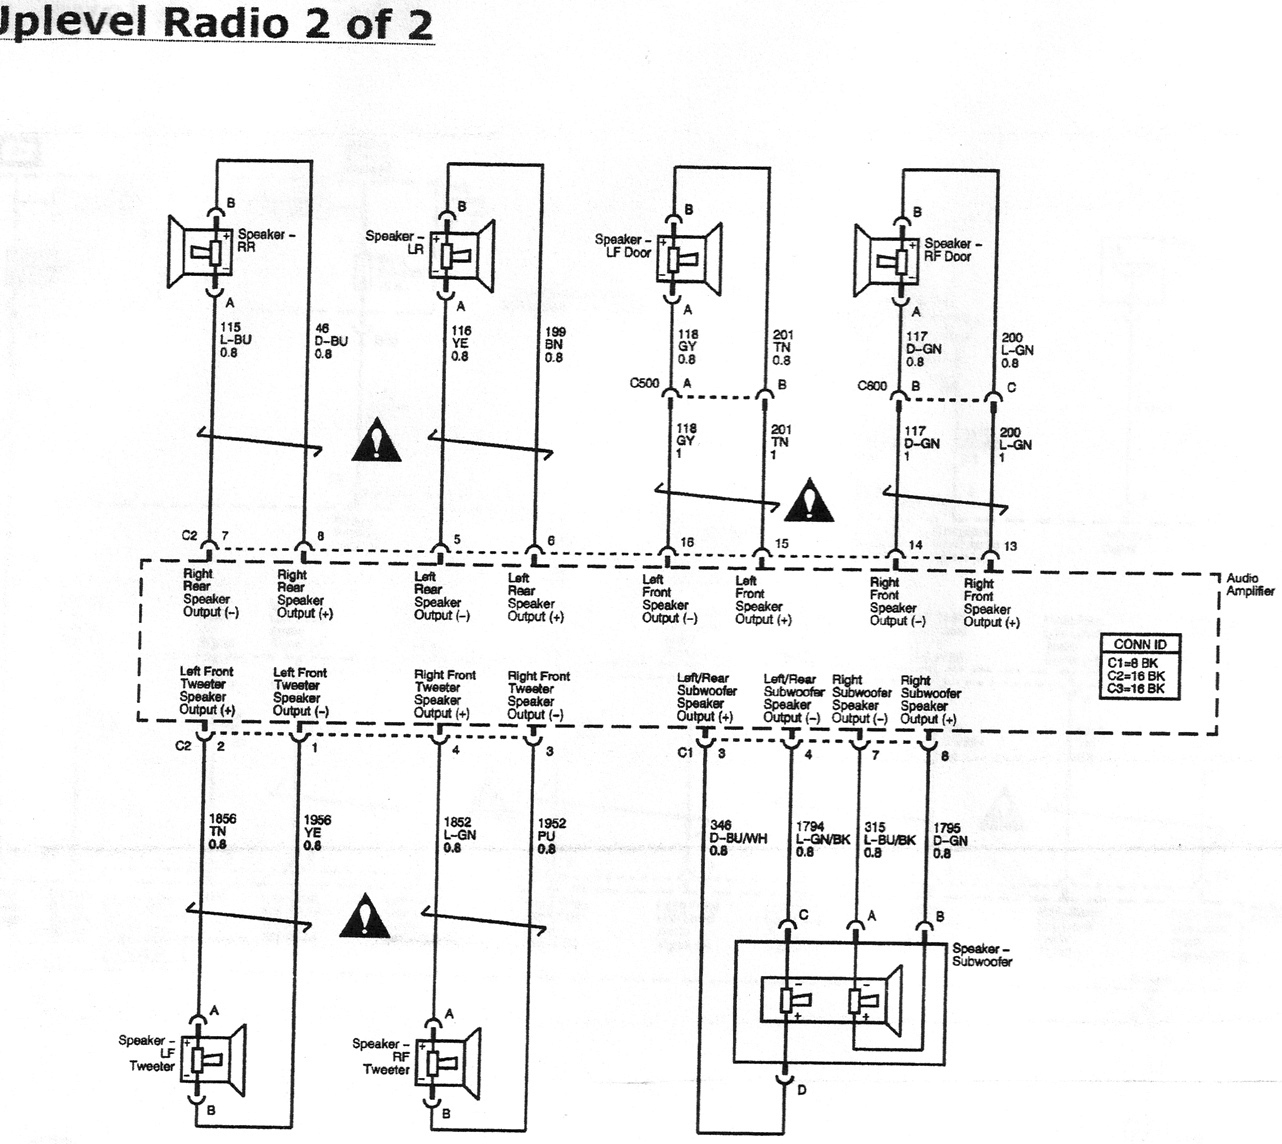 29802 monsoon amp speaker replacement monsoon_wiring_diagram_page_2 monsoon amp and speaker replacement saturn sky forums saturn 2003 jetta monsoon wiring diagram at bayanpartner.co